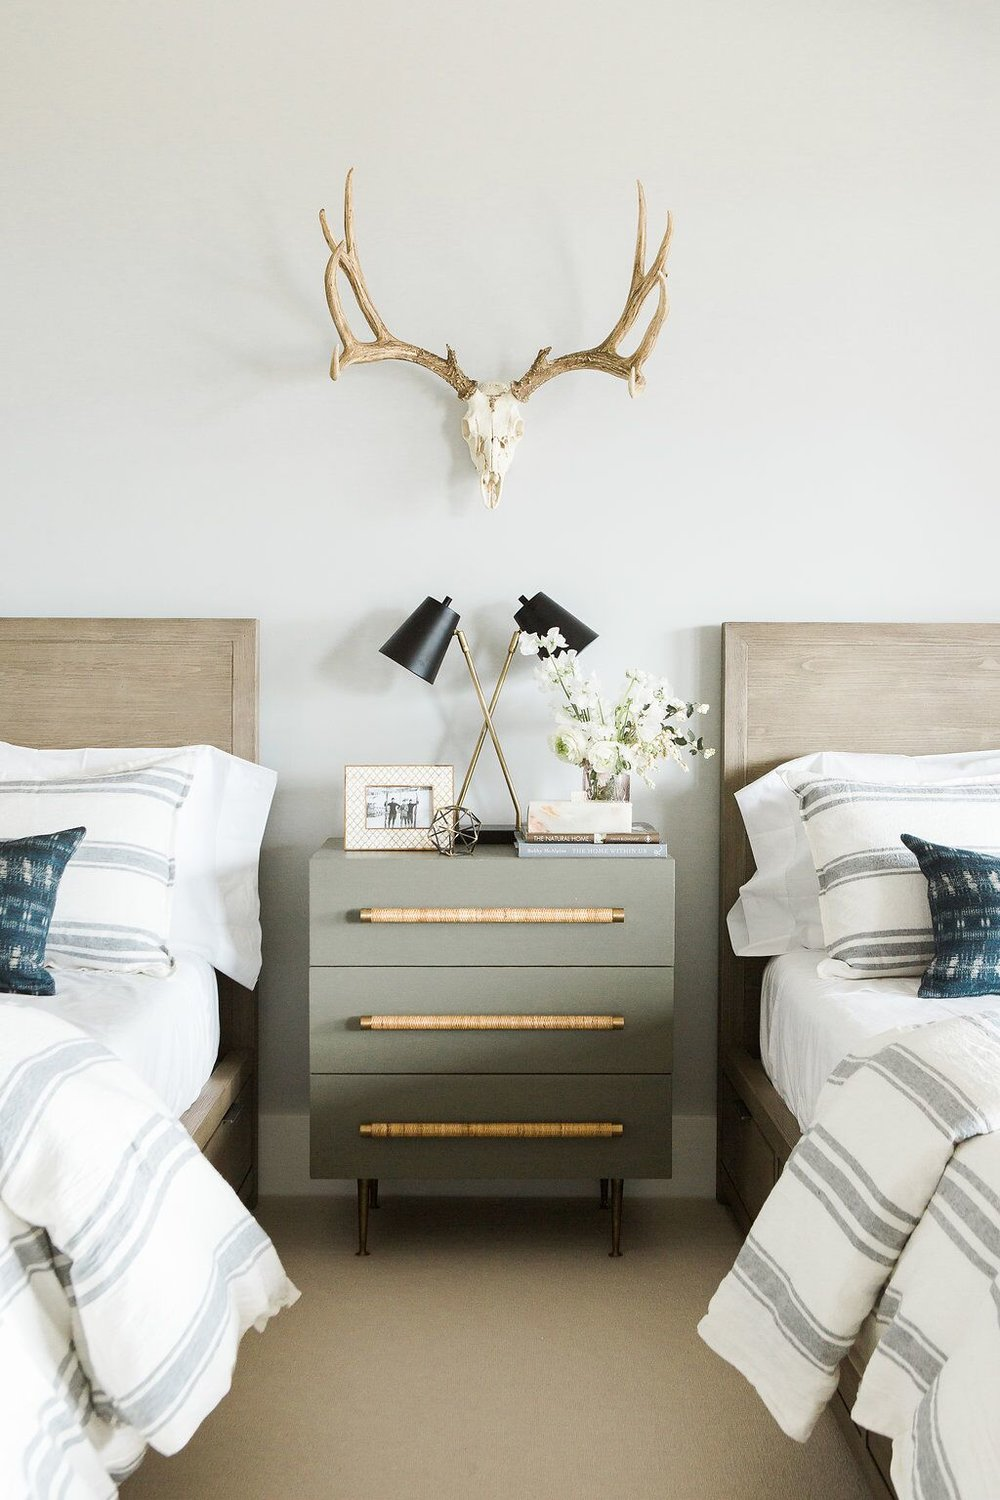 olive green modern nightstand between twin beds